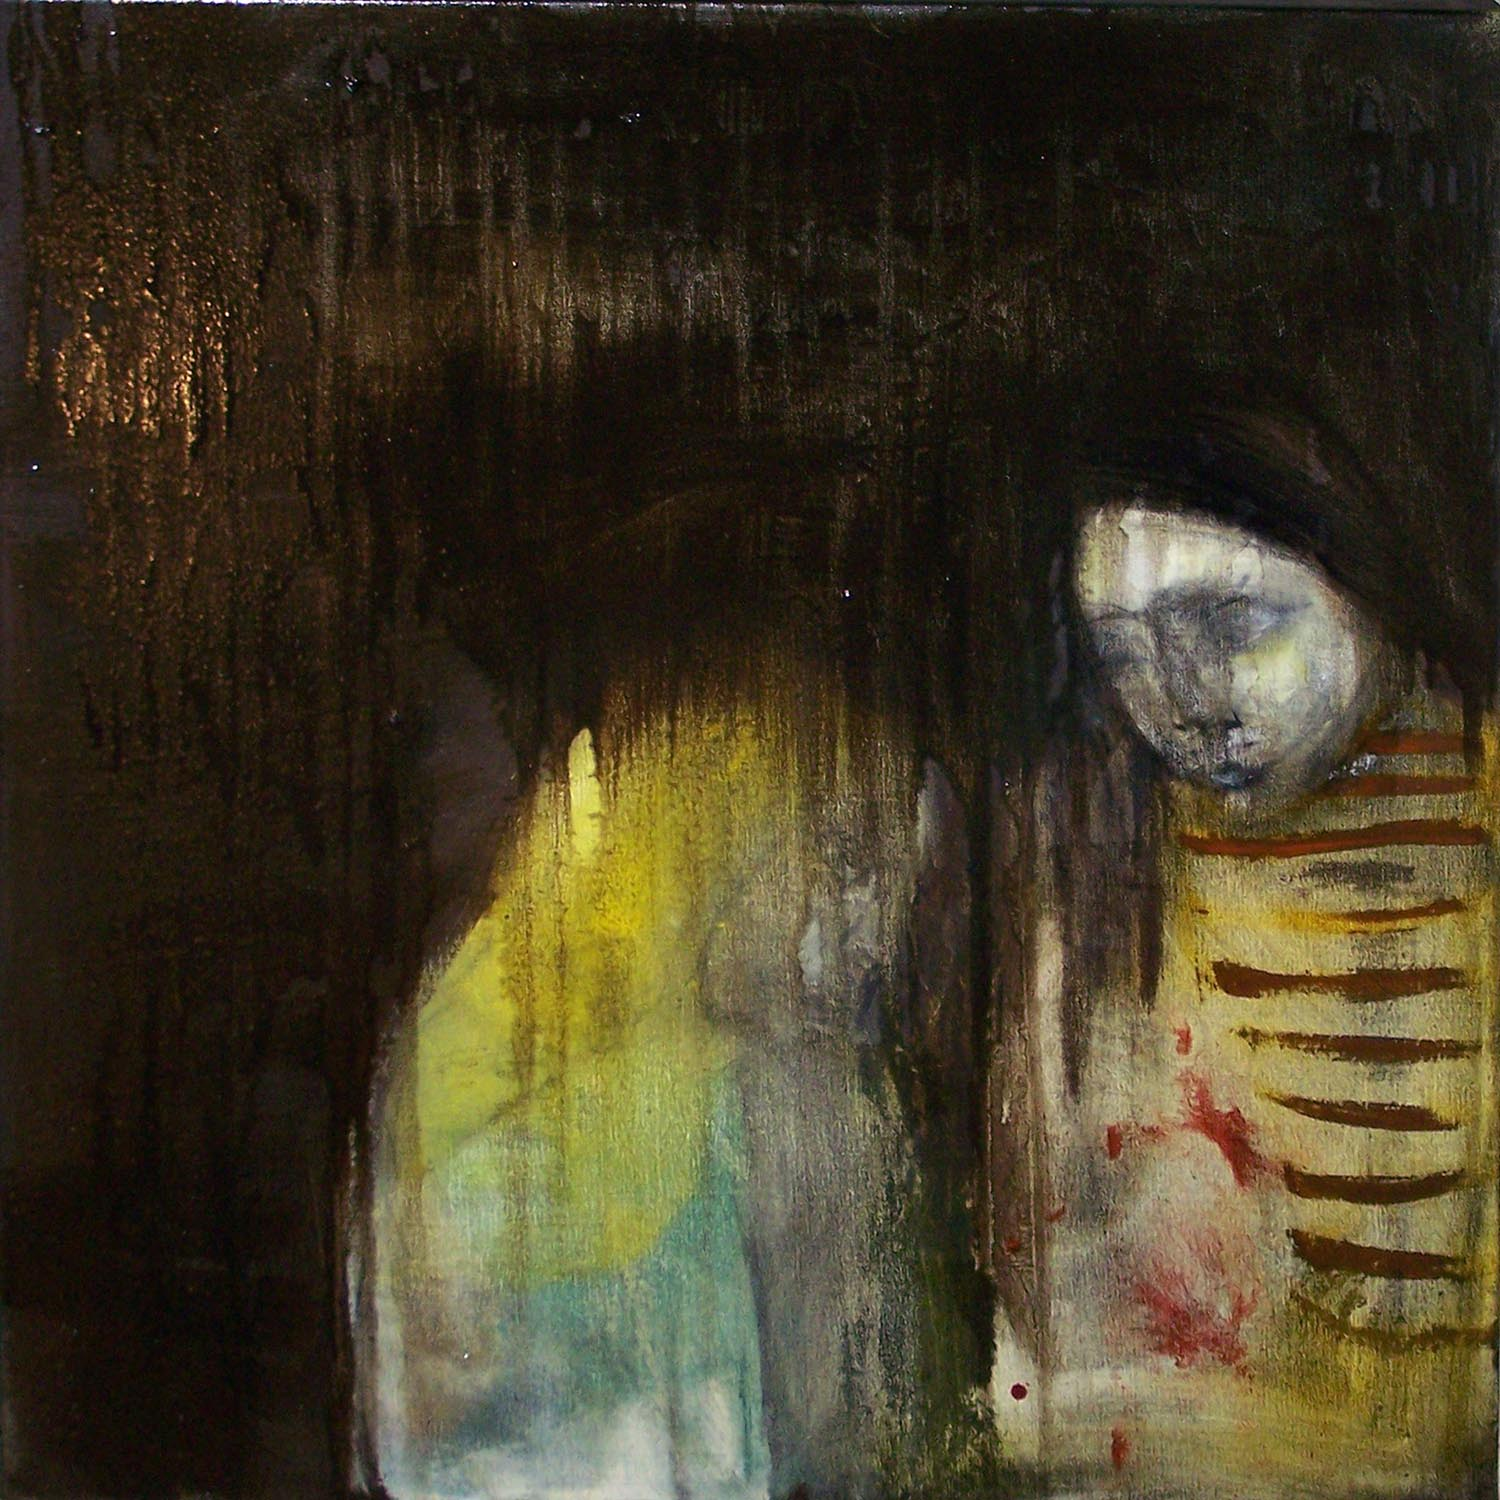 Laurel Hausler :: Painting of a girl with determination